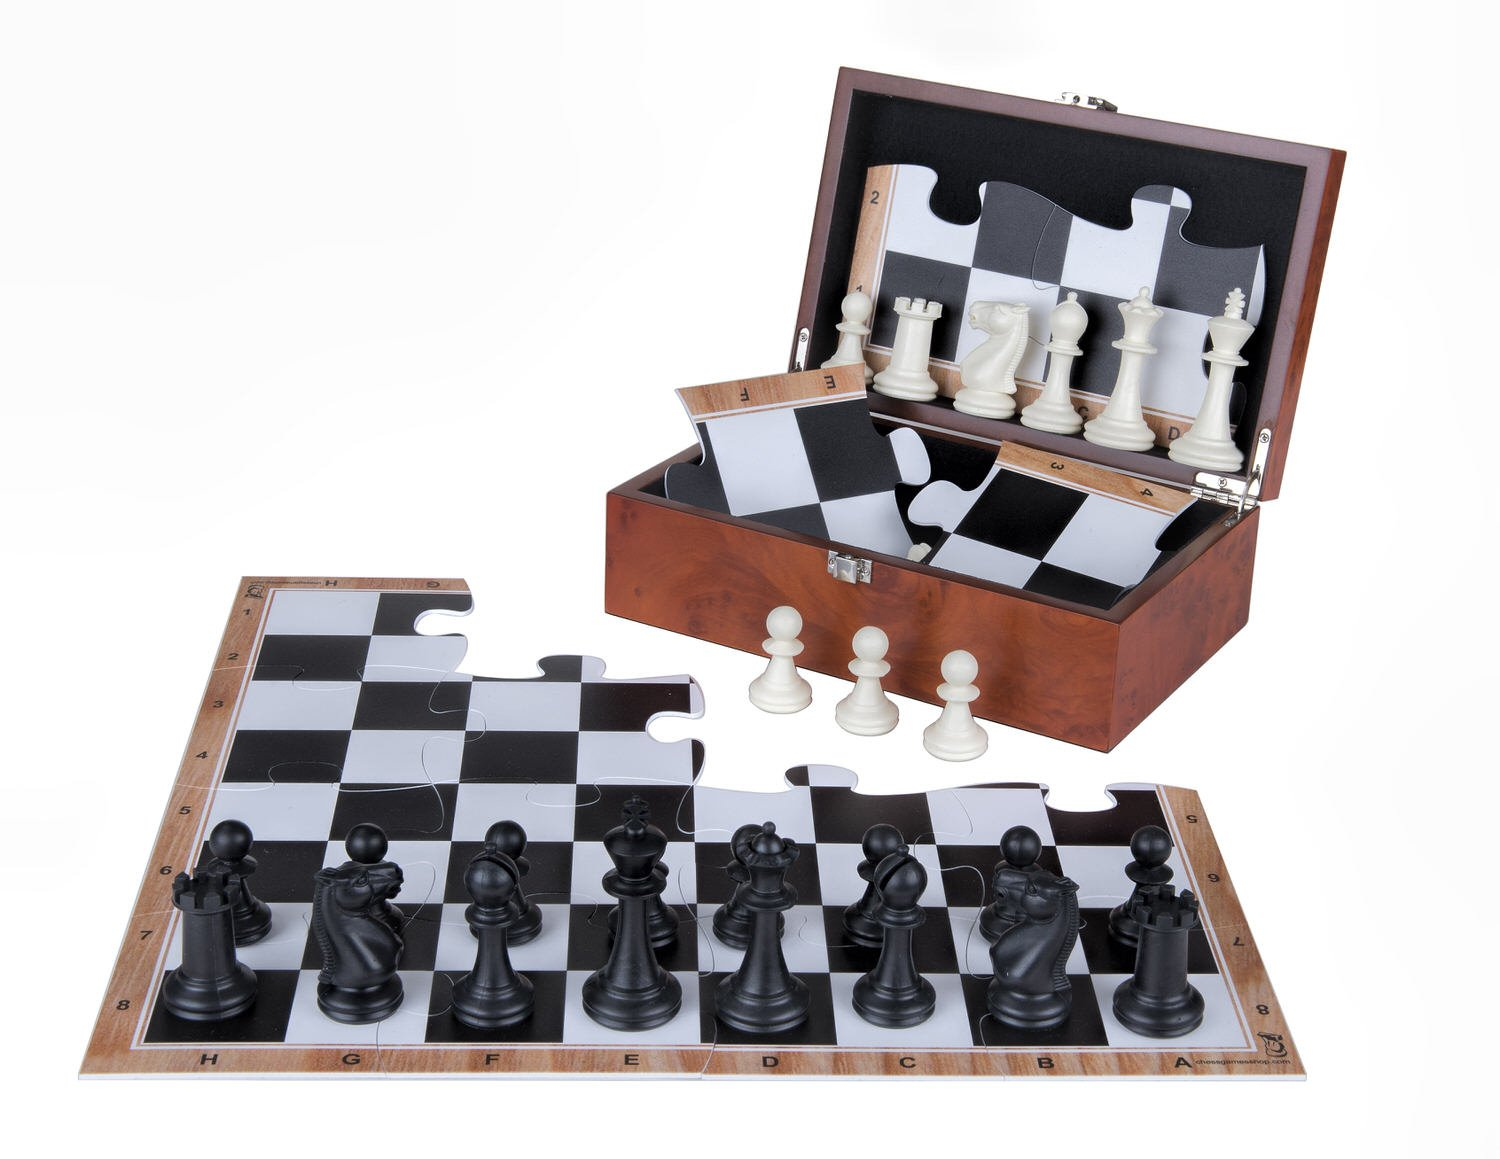 jigchess set